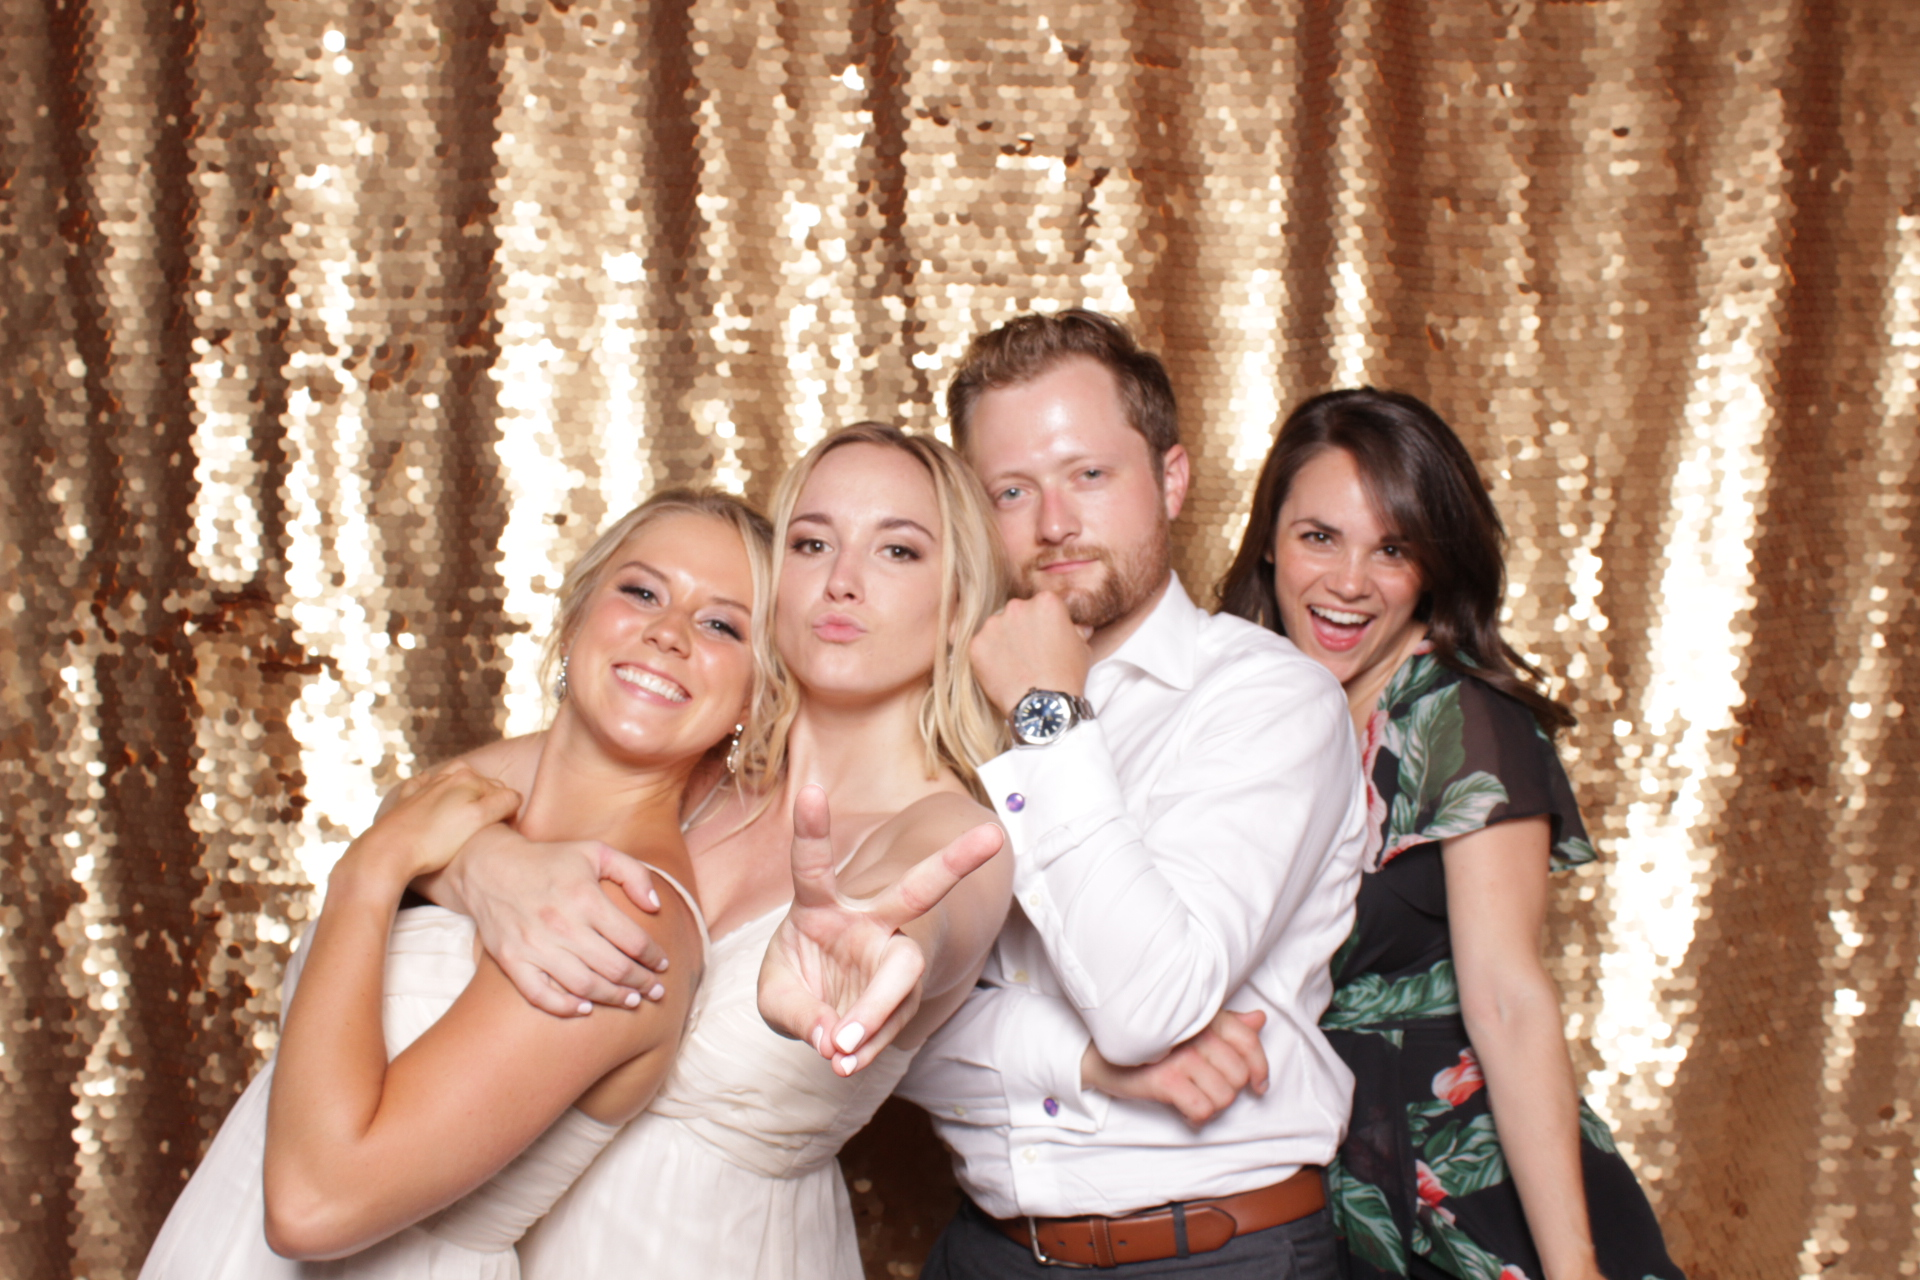 Minneapolis_St Paul_Photo_Booths_Weddings (10).jpg